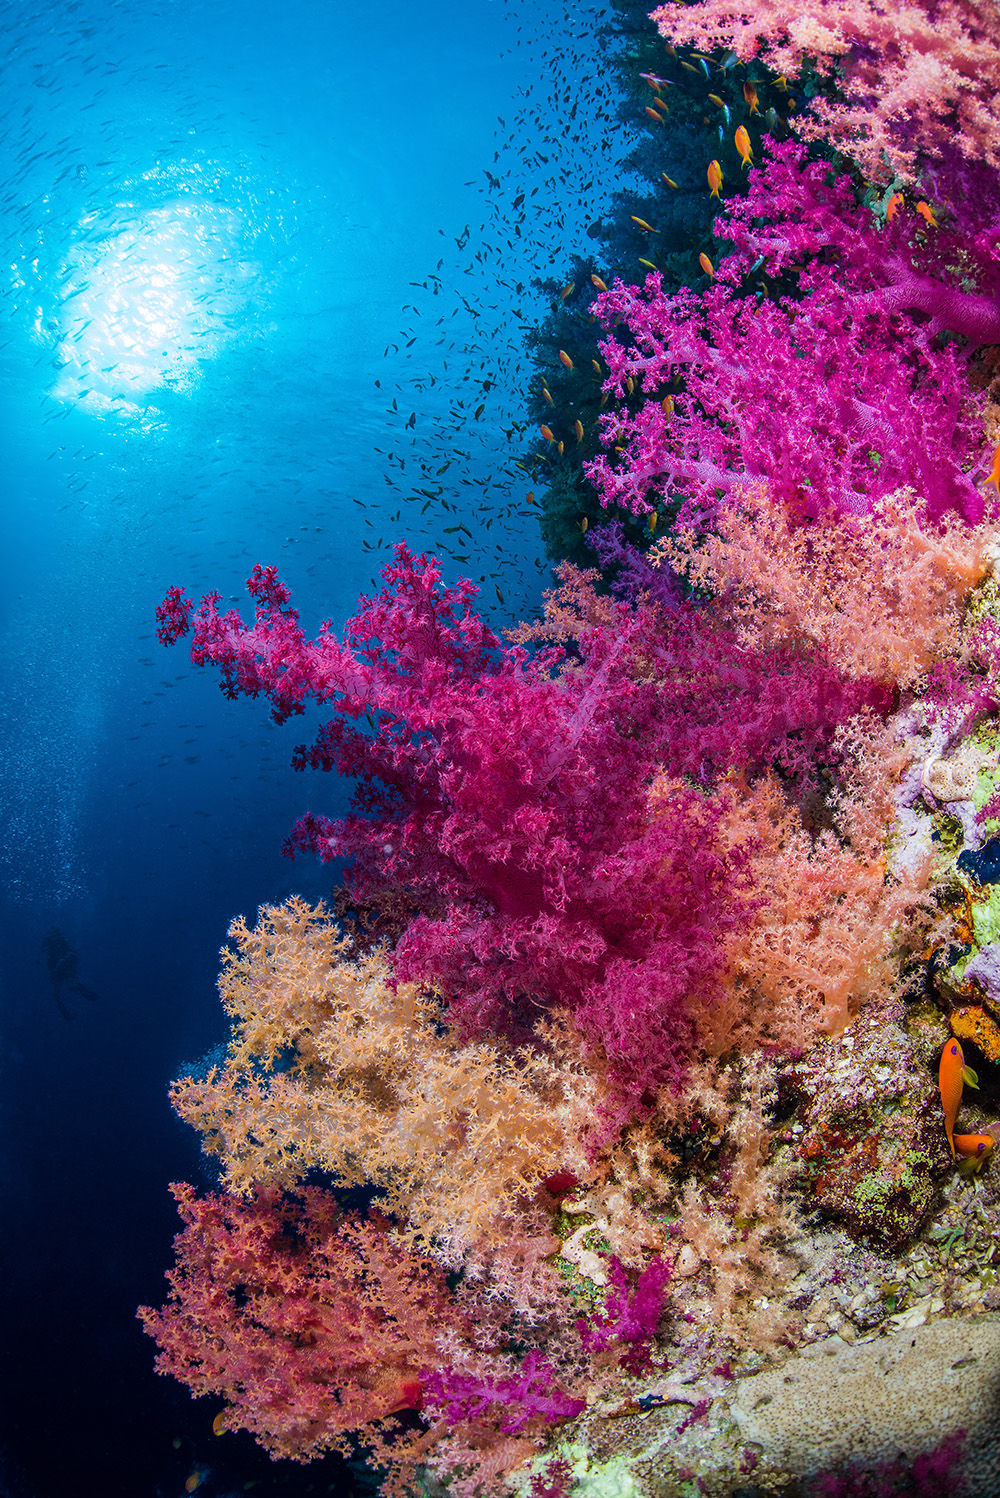 Picture Credit: Brook Peterson / Coral Reef Image Bank